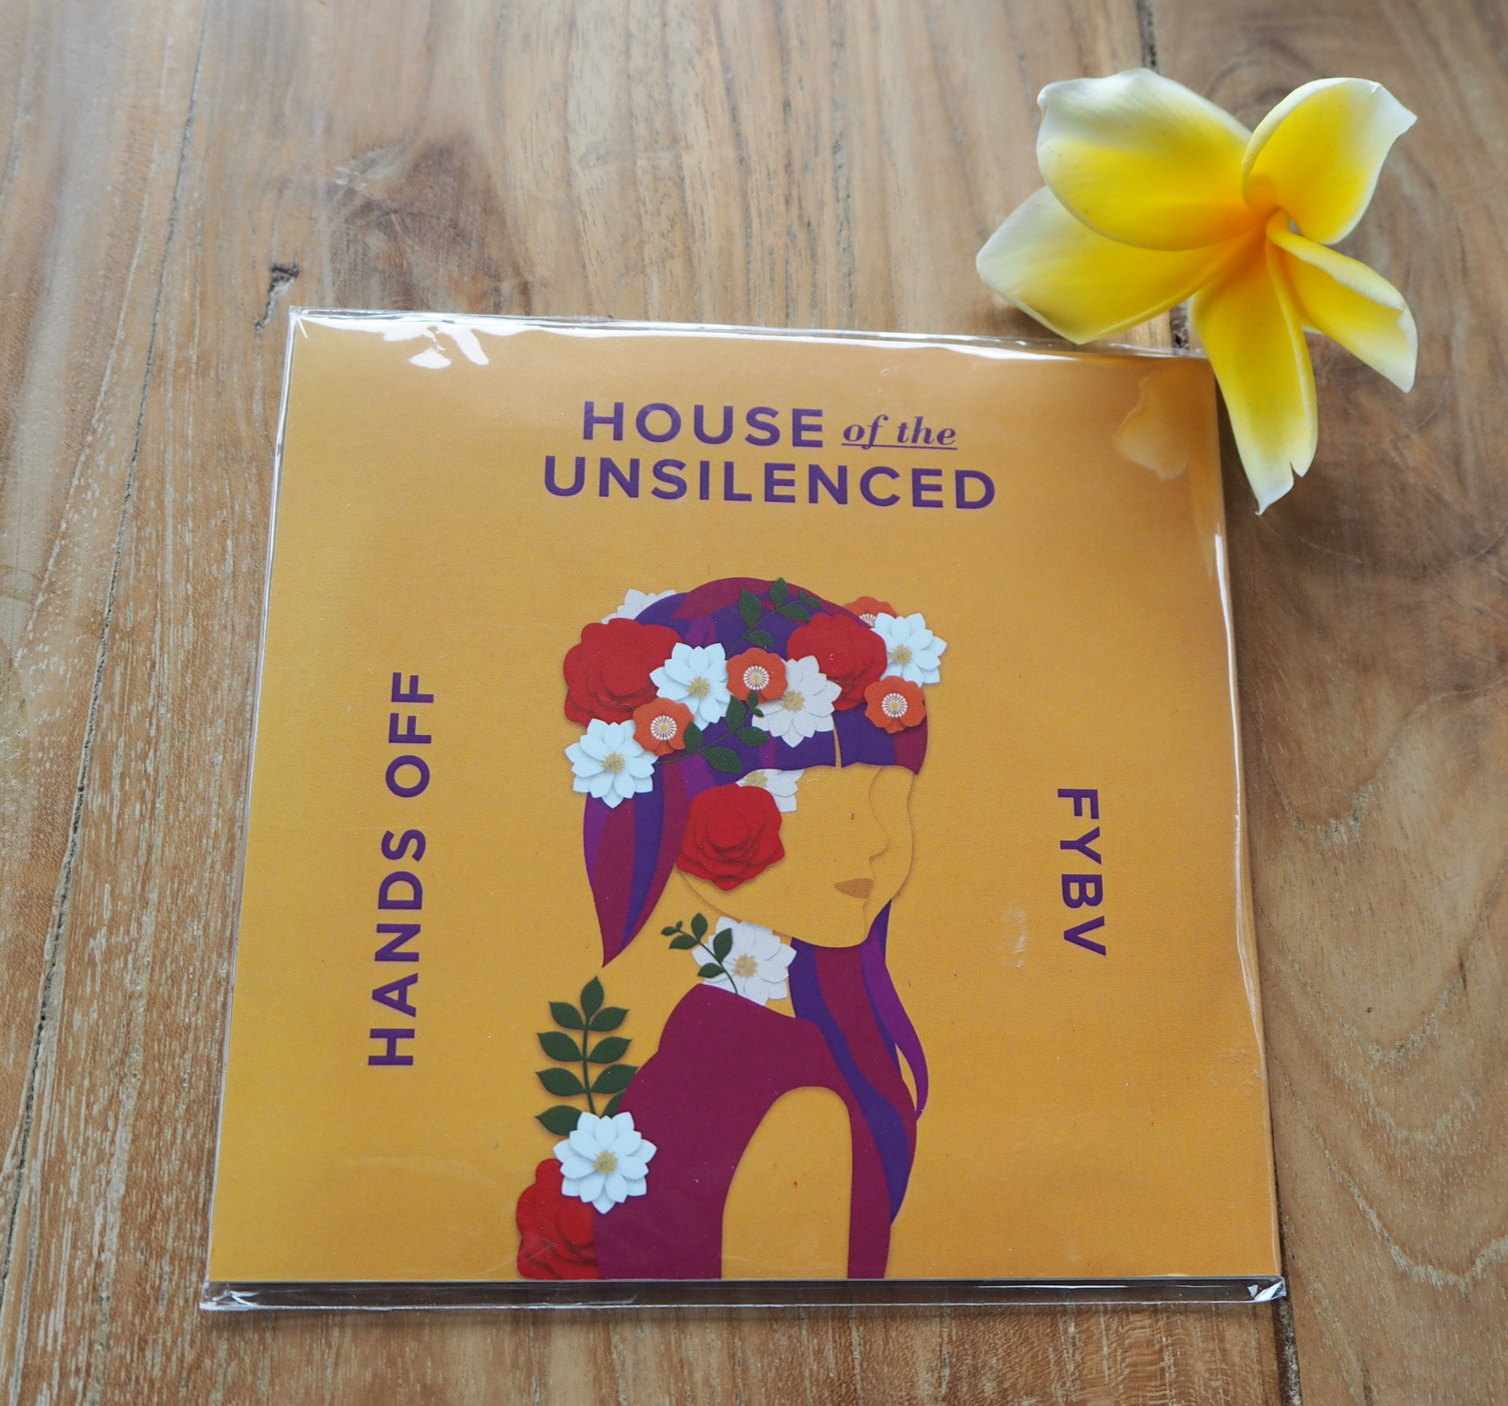 CD Yacko x House of the Unsilenced: Rp 50.000